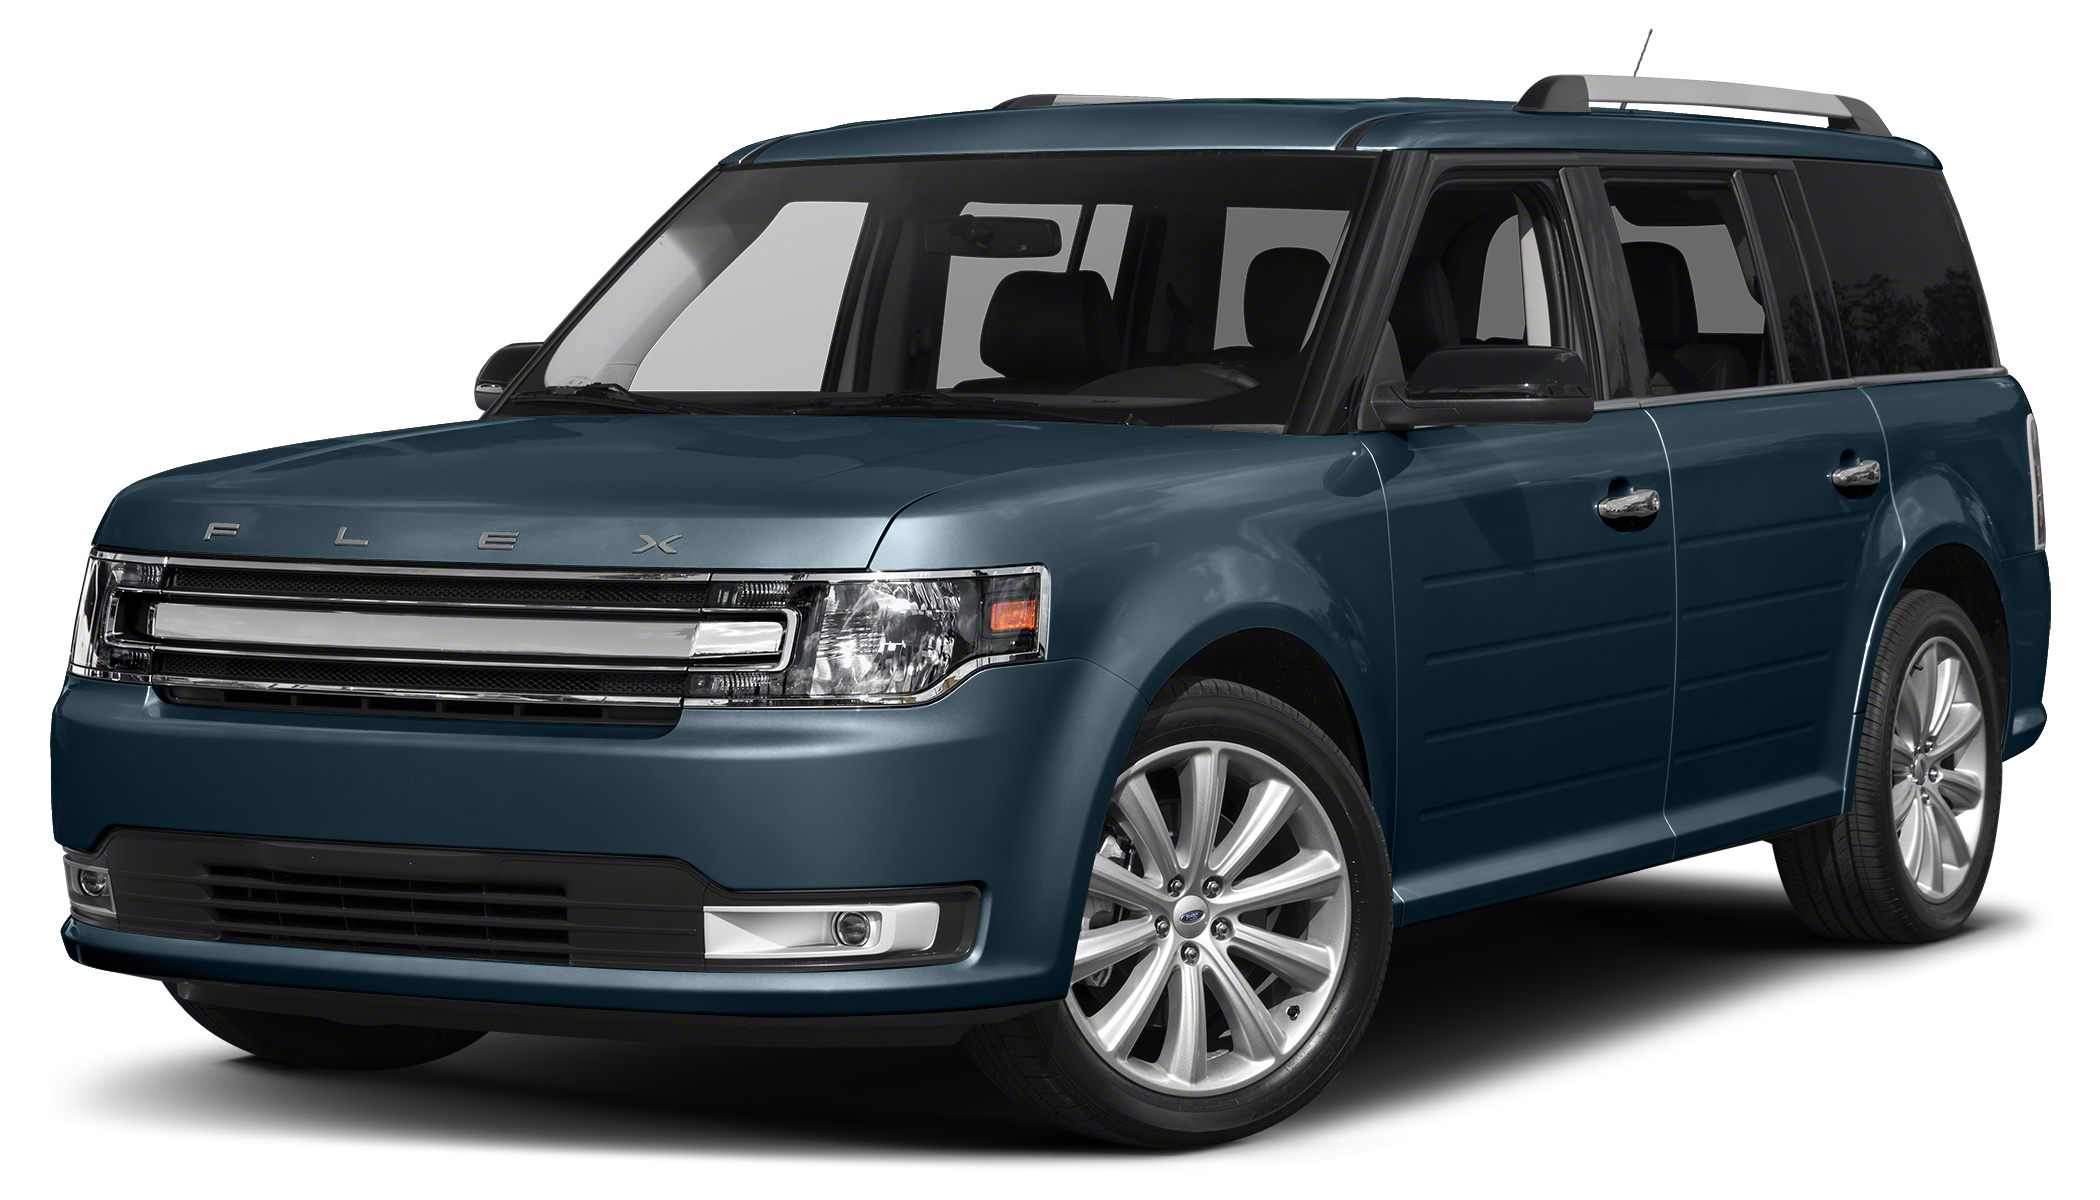 2018 Ford Flex SEL Style is a dominant theme for the 2018 Ford Flex inside and out Flex features